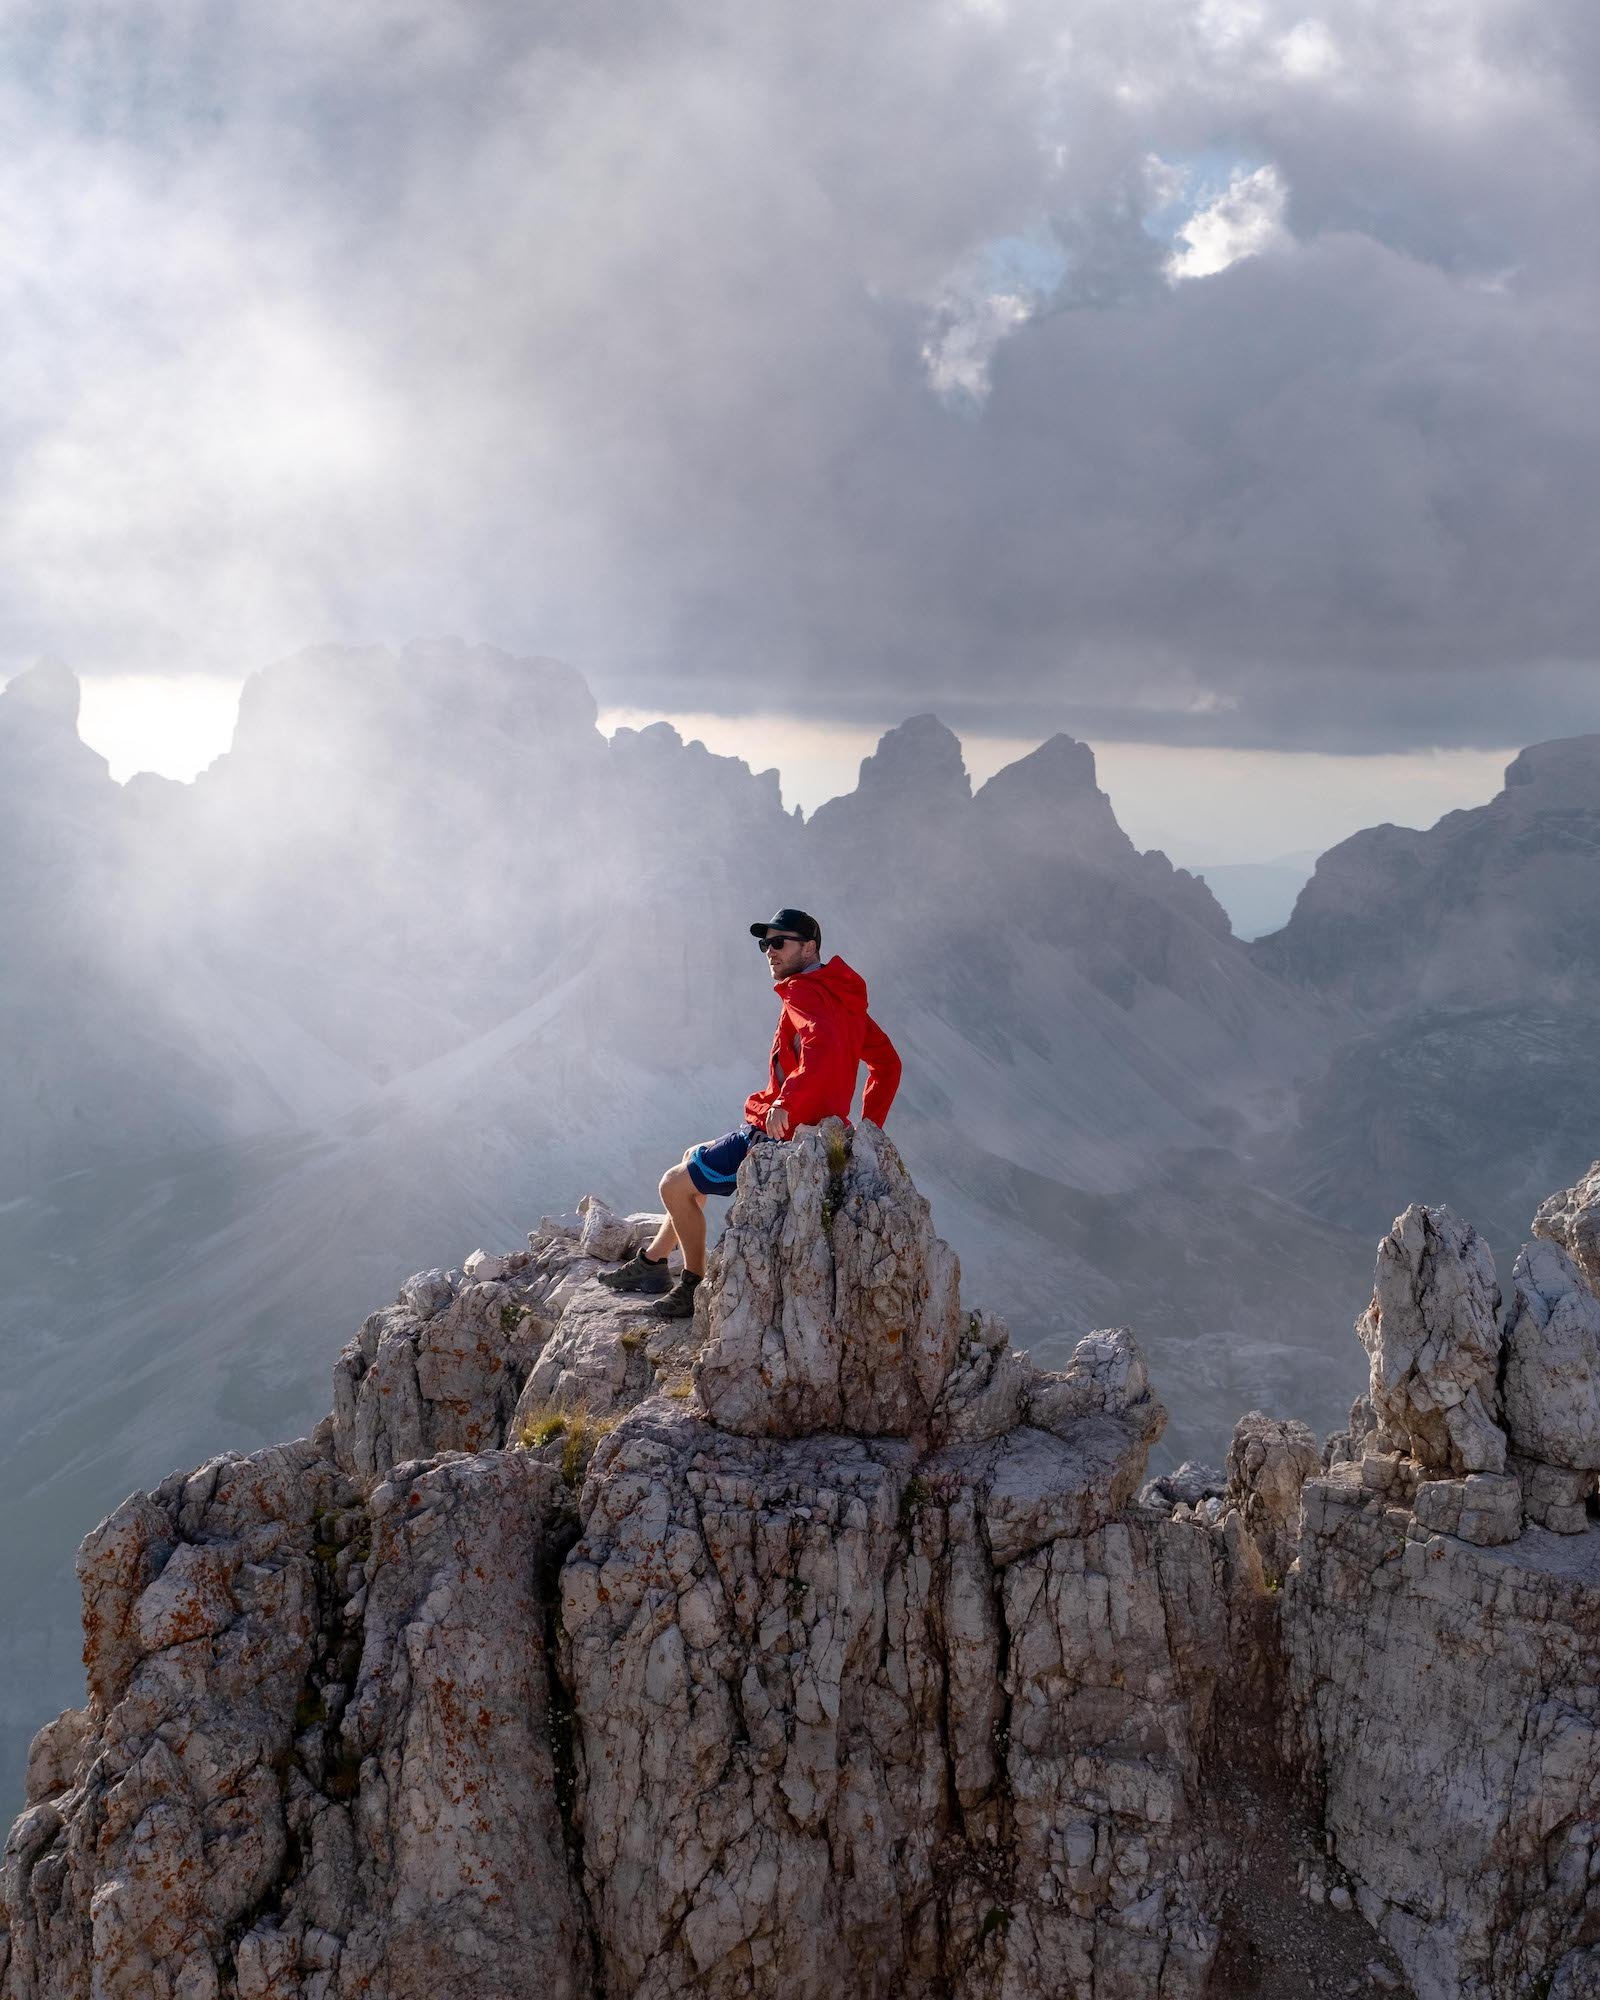 Cameron on the summit of Monte Paterno summit in Dolomites